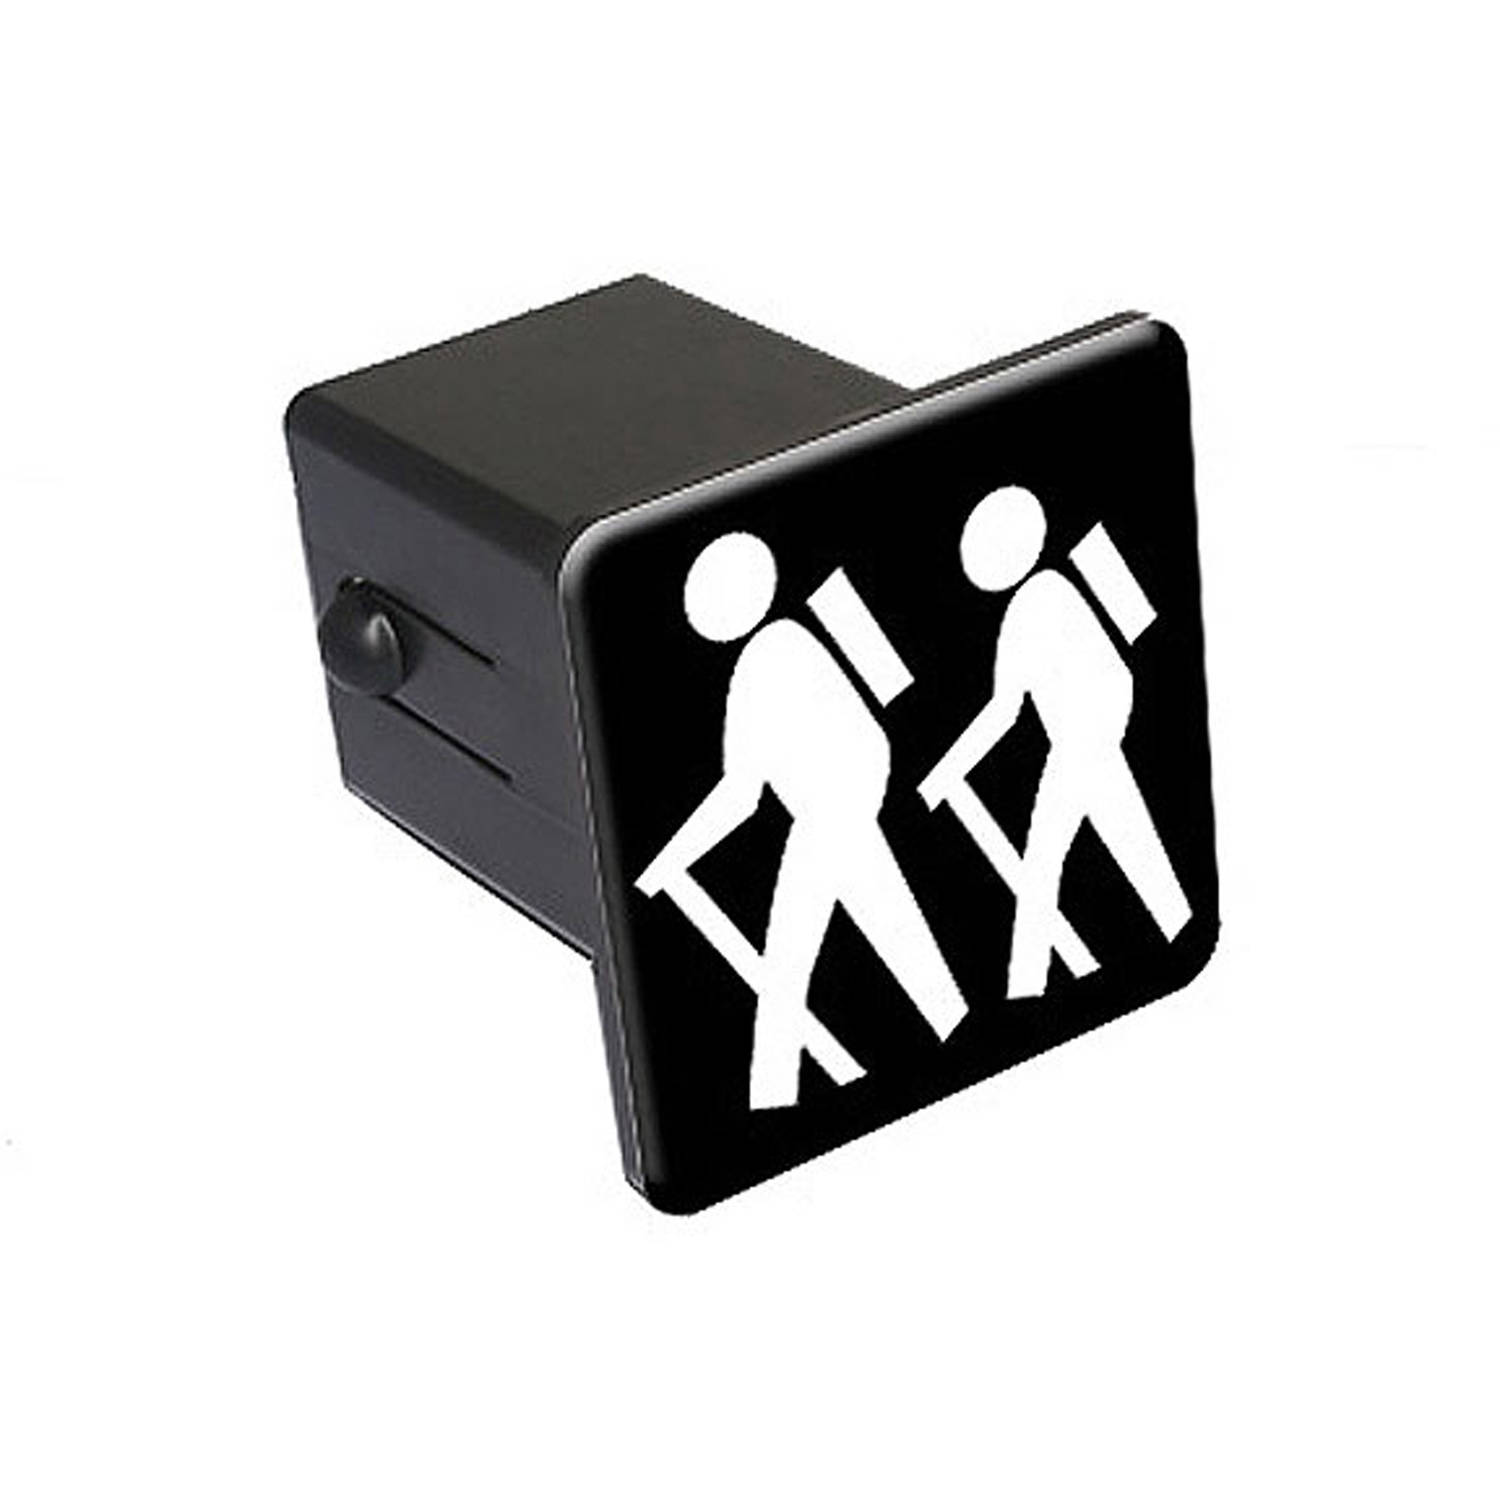 "Hiking, Hikers 2"" Tow Trailer Hitch Cover Plug Insert"